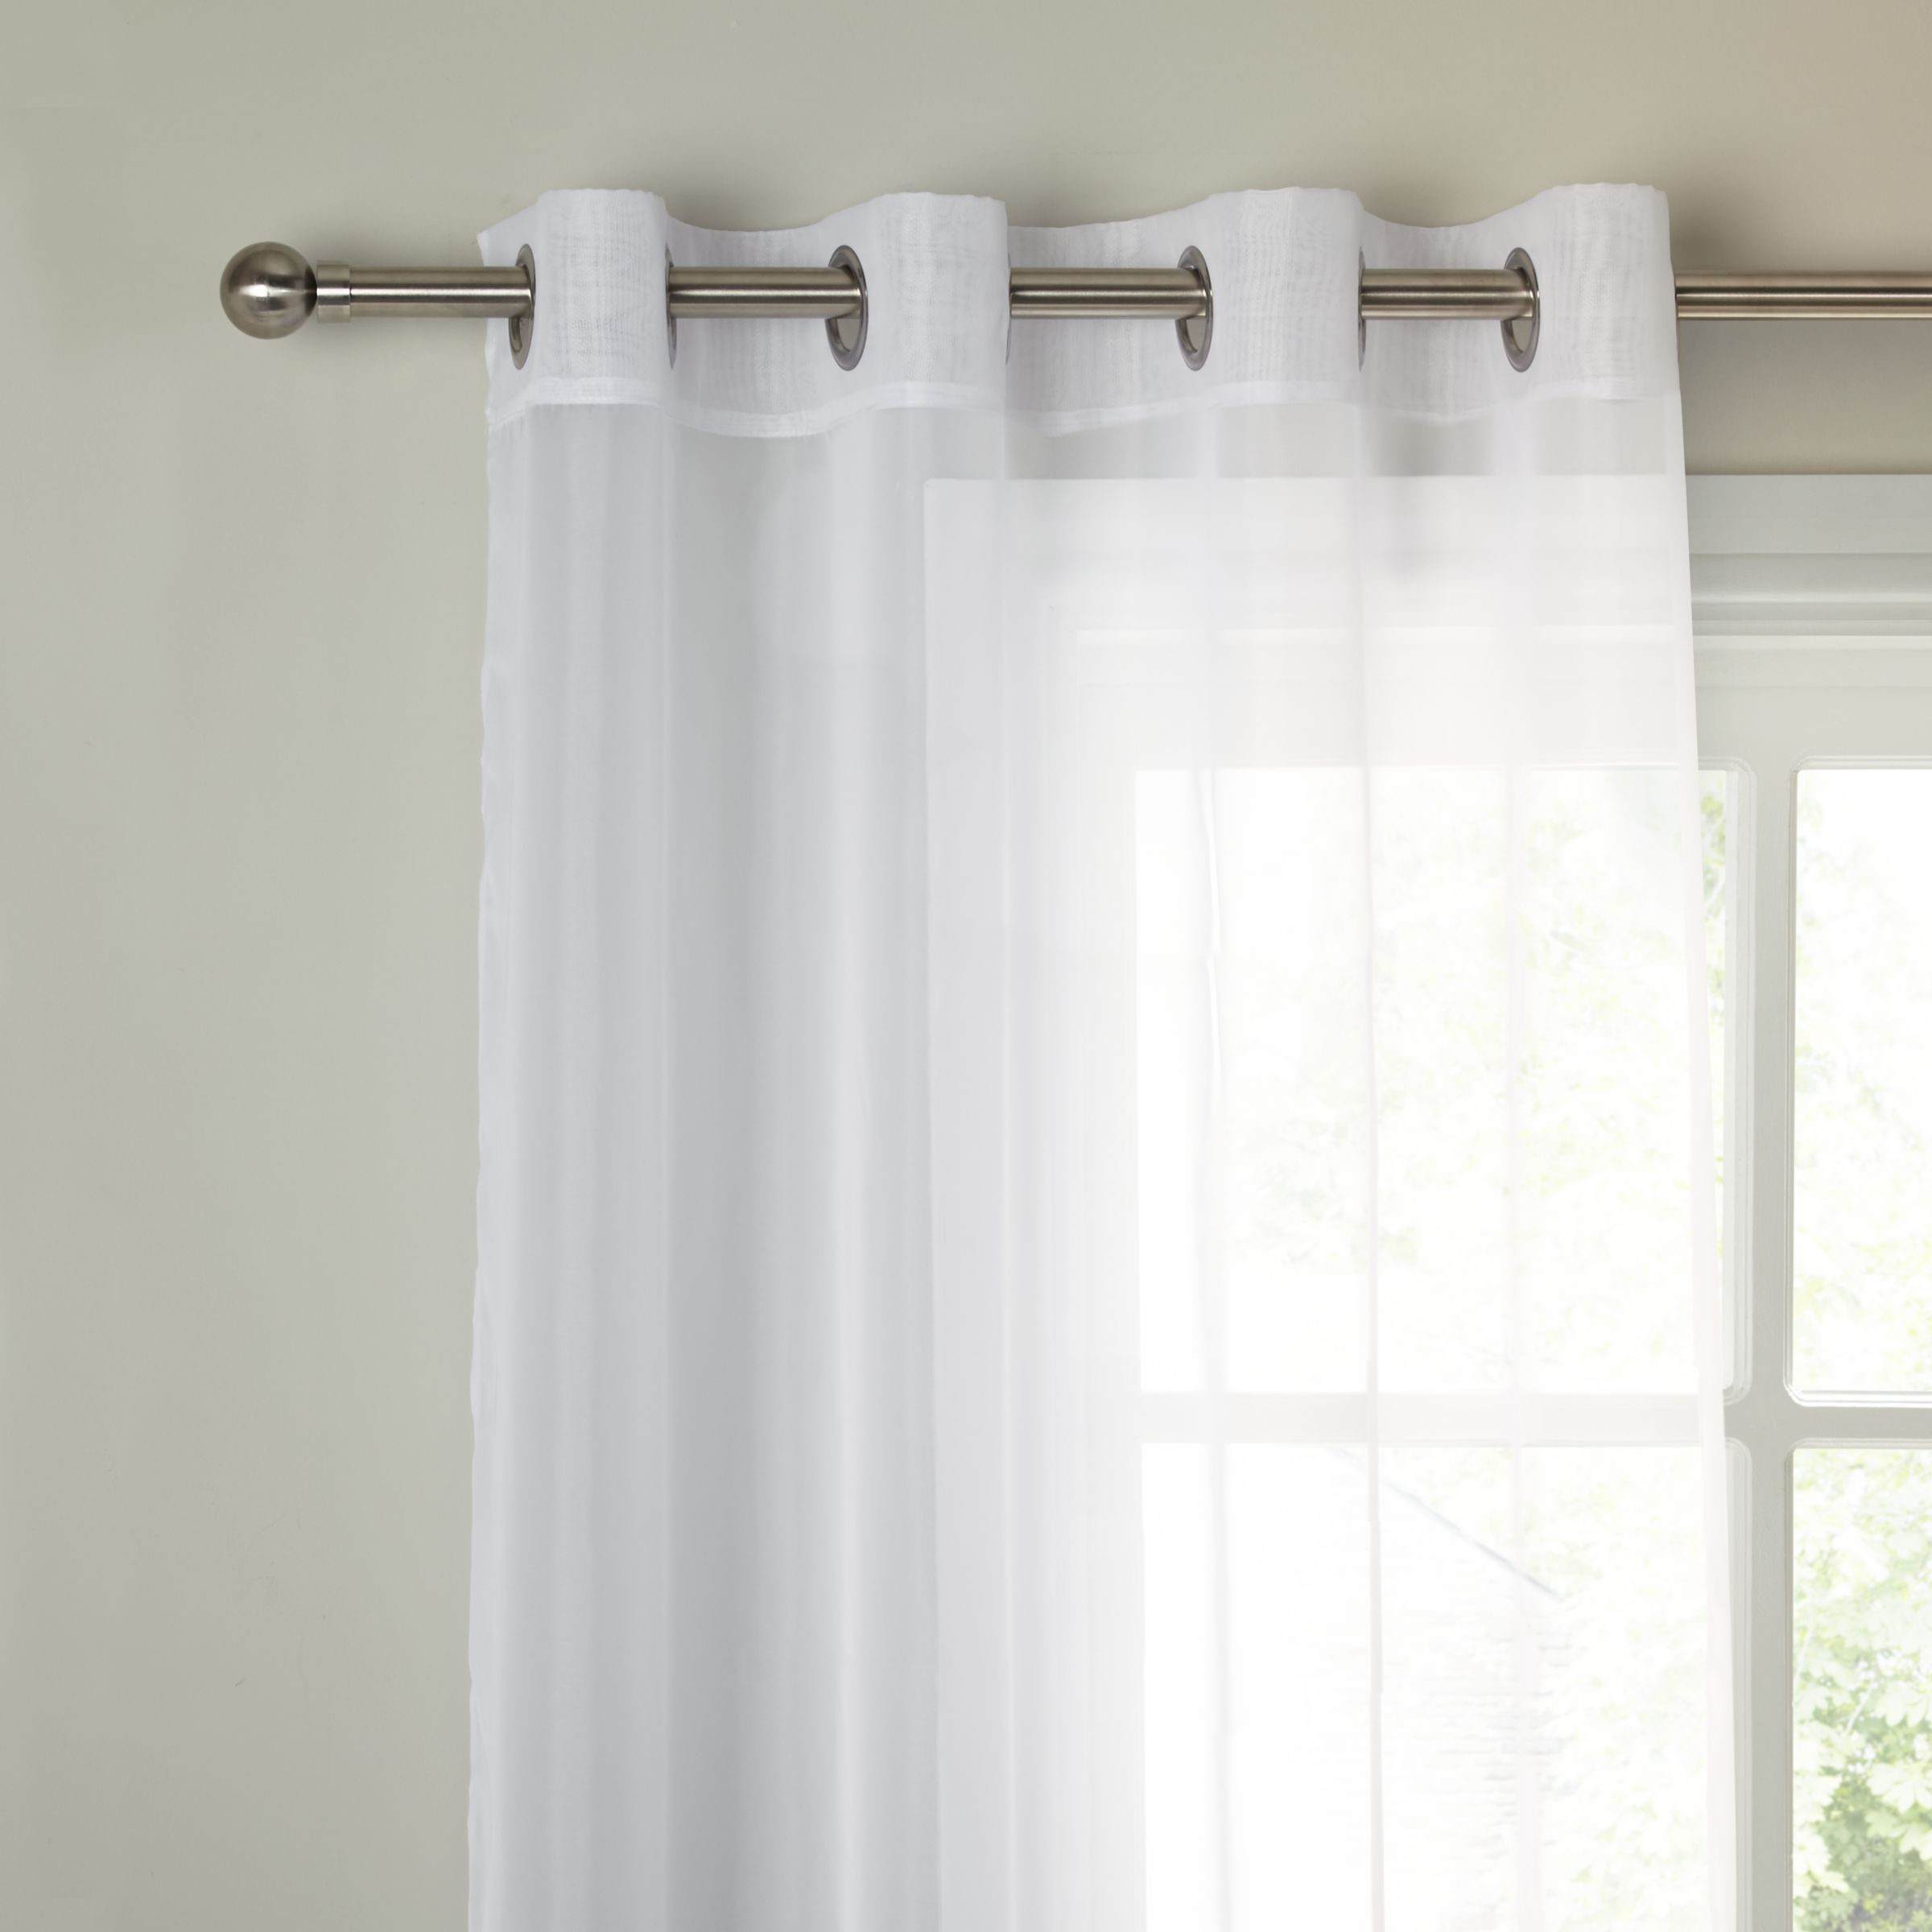 Ready Made Sheer Curtains Online John Lewis The Basics Voile Eyelet Panel White At John Lewis